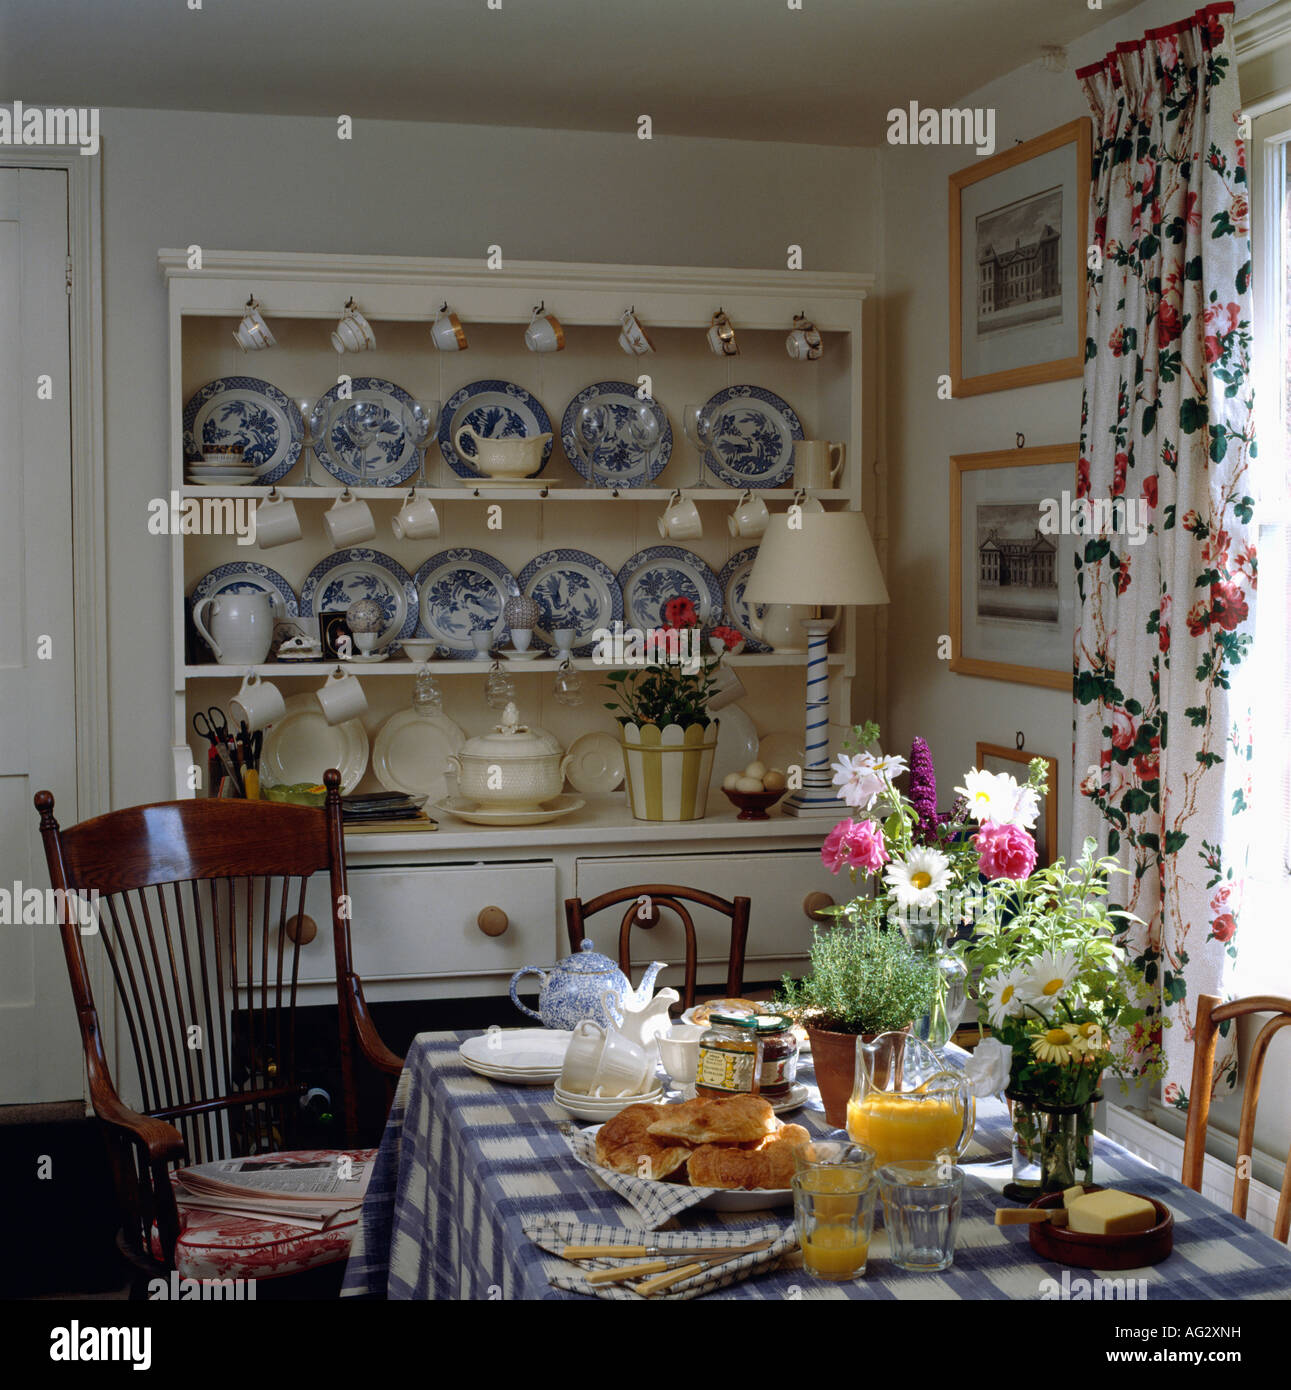 Blue White China On Dresser In Country Dining Room With Floral Drapes And Fresh